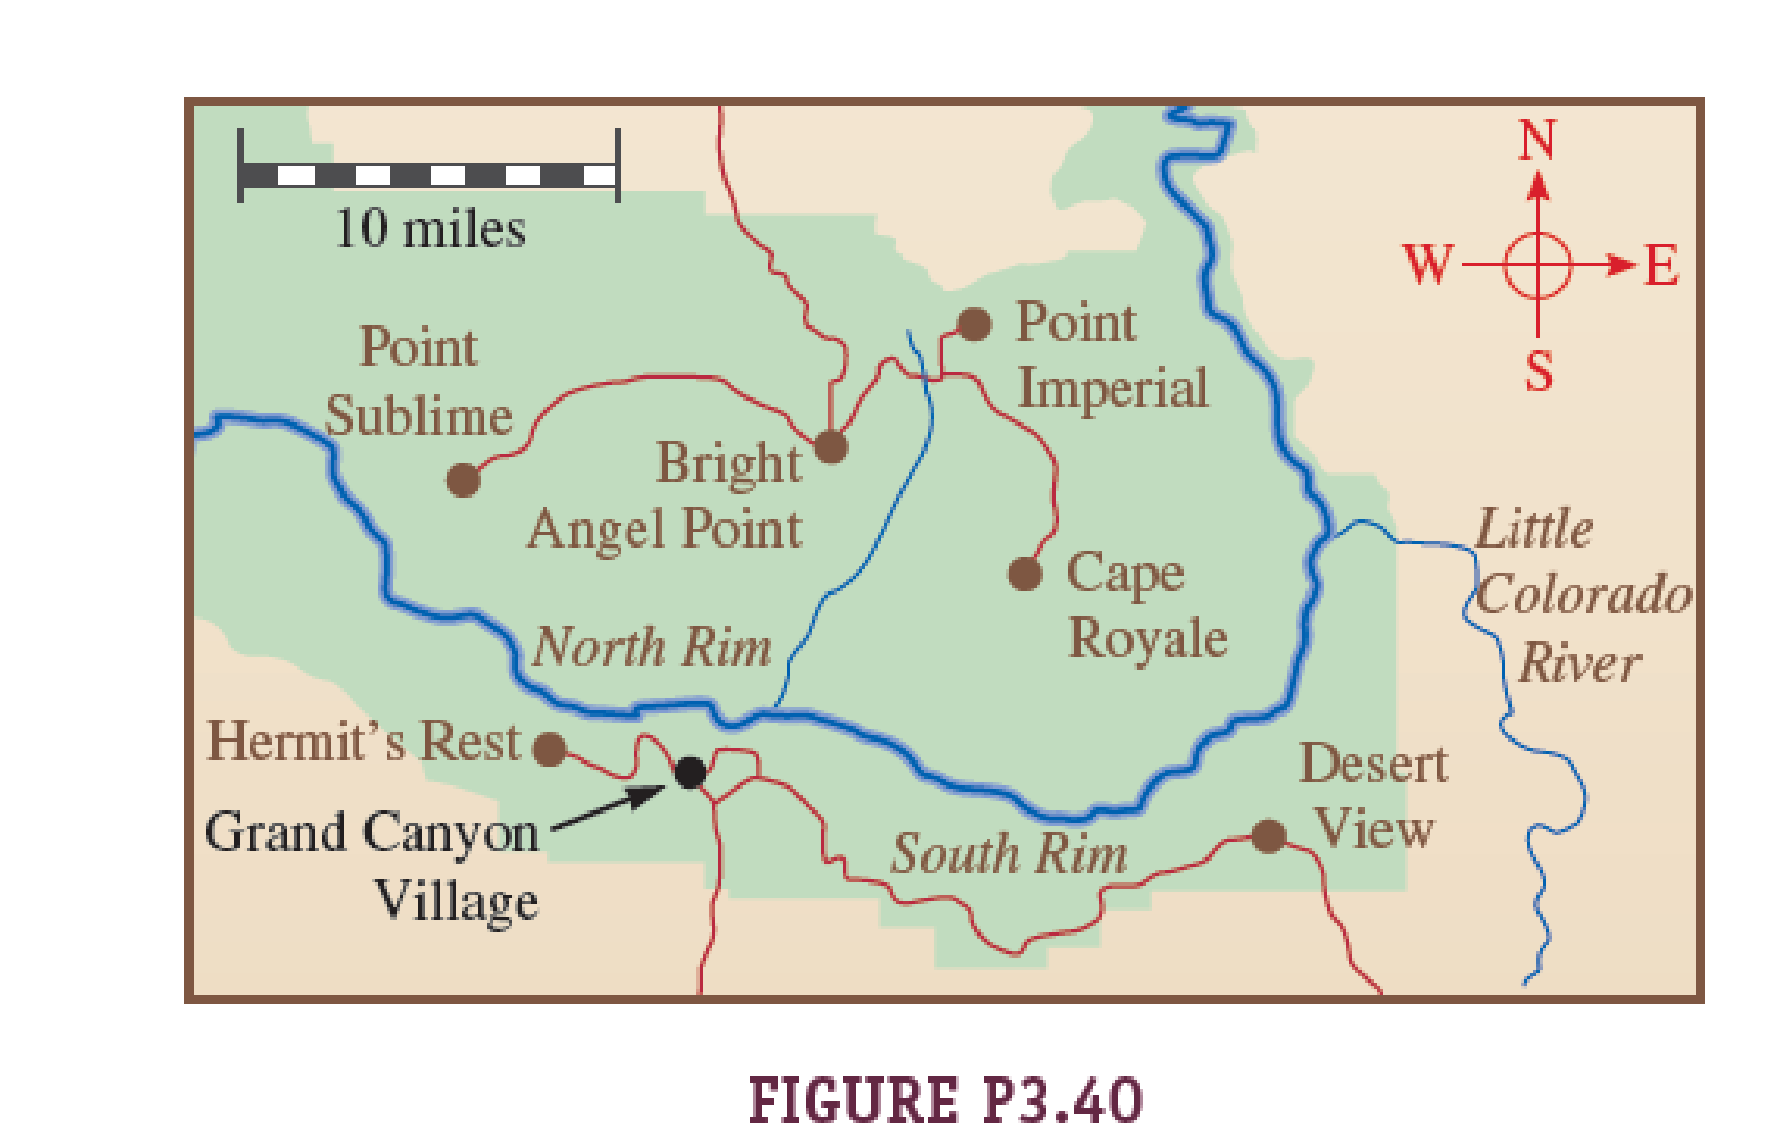 grand canyon np map Figure P3 40 Shows A Map Of Grand Canyon National Park In Arizona grand canyon np map